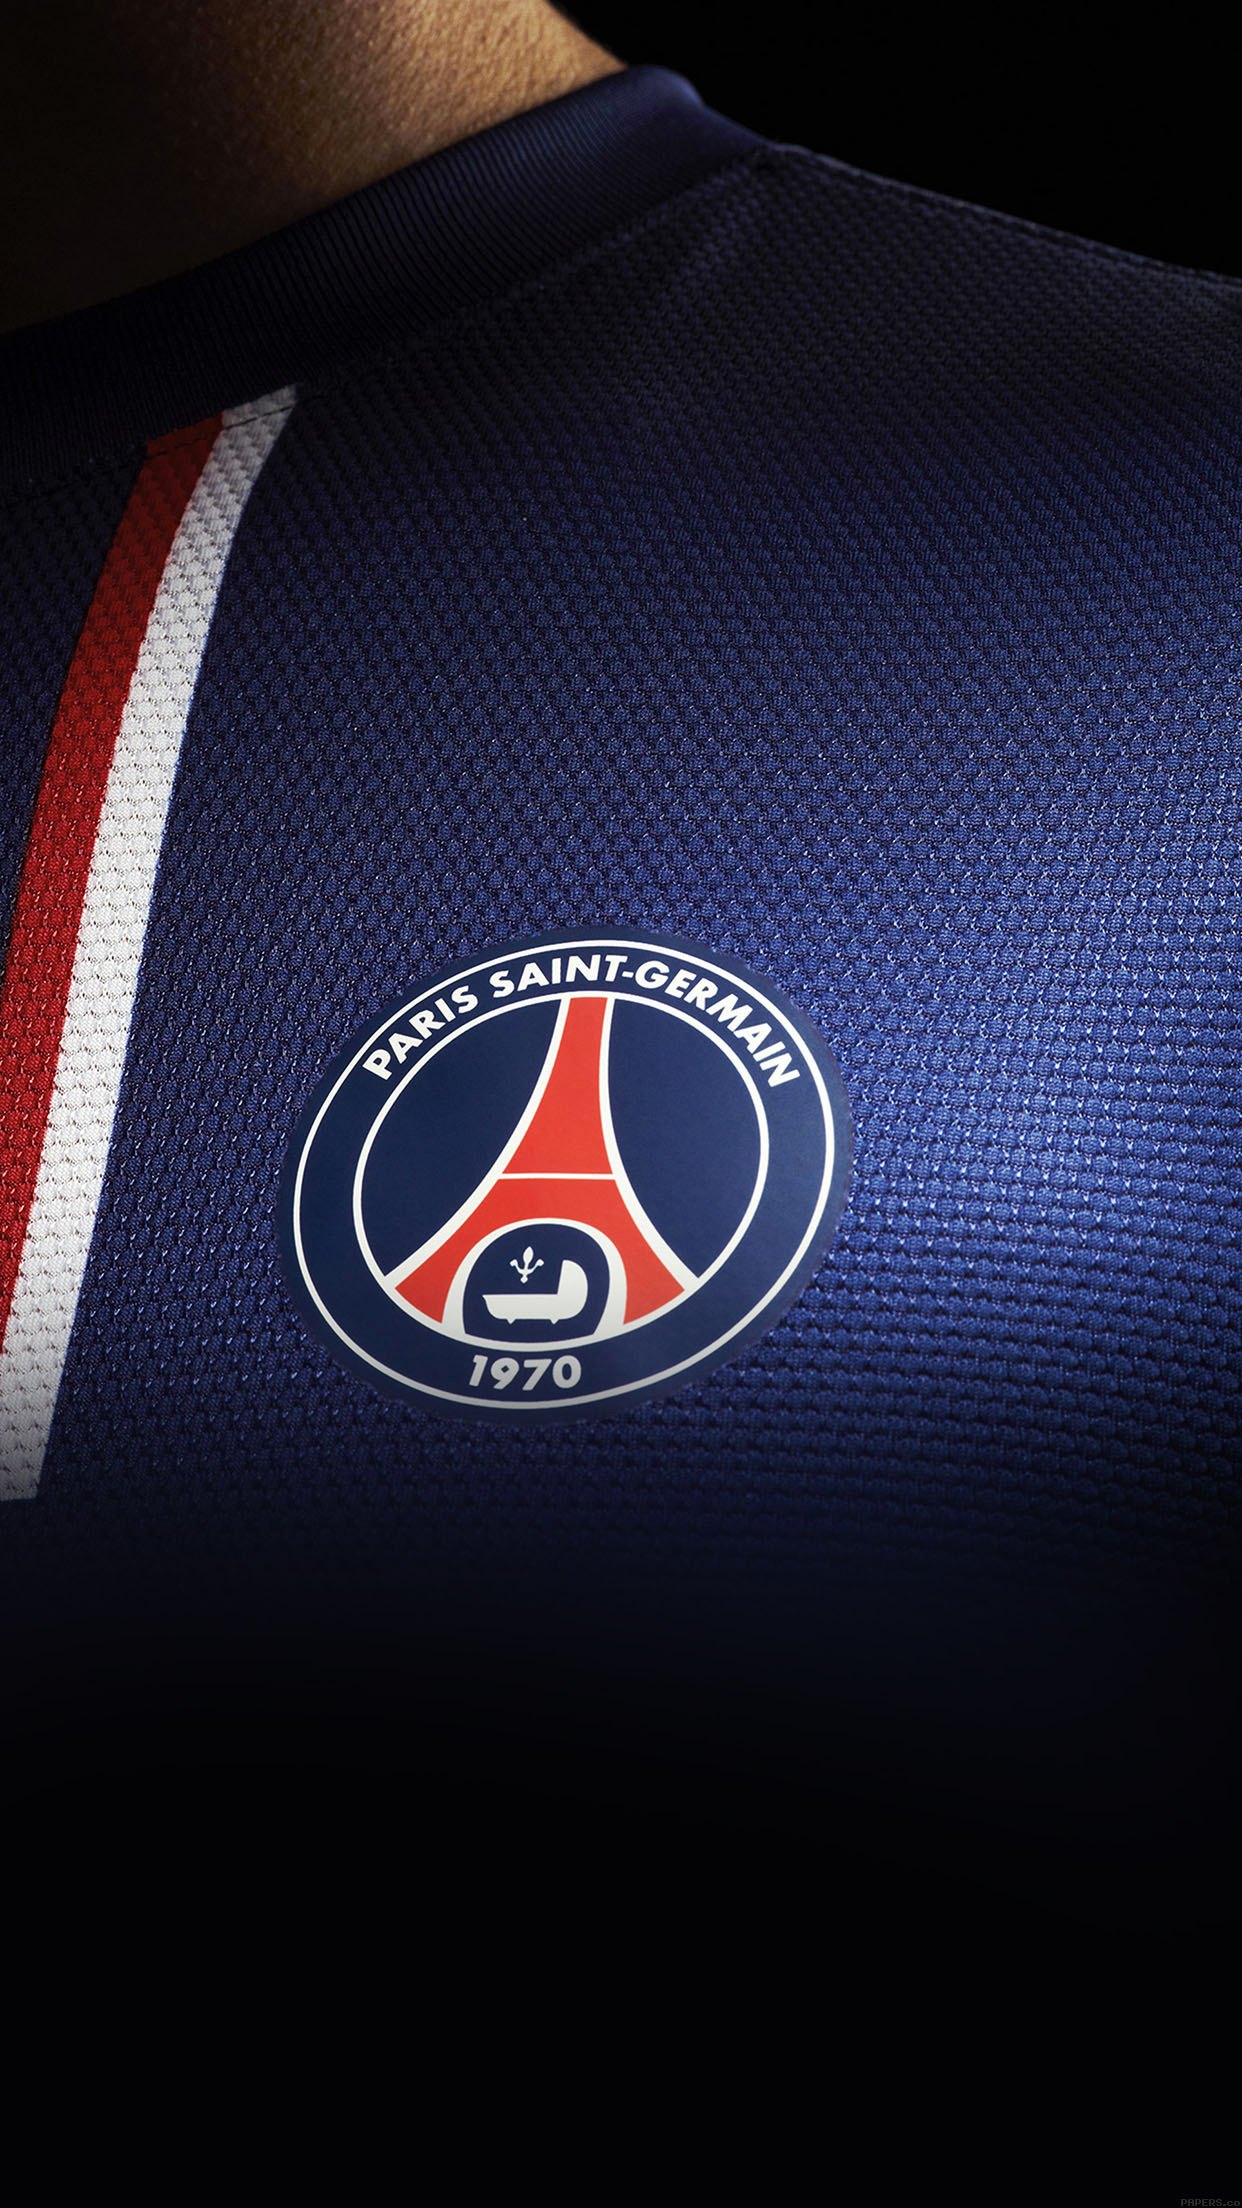 PSG Maillot iPhone 3Wallpapers Parallax PSG Maillot